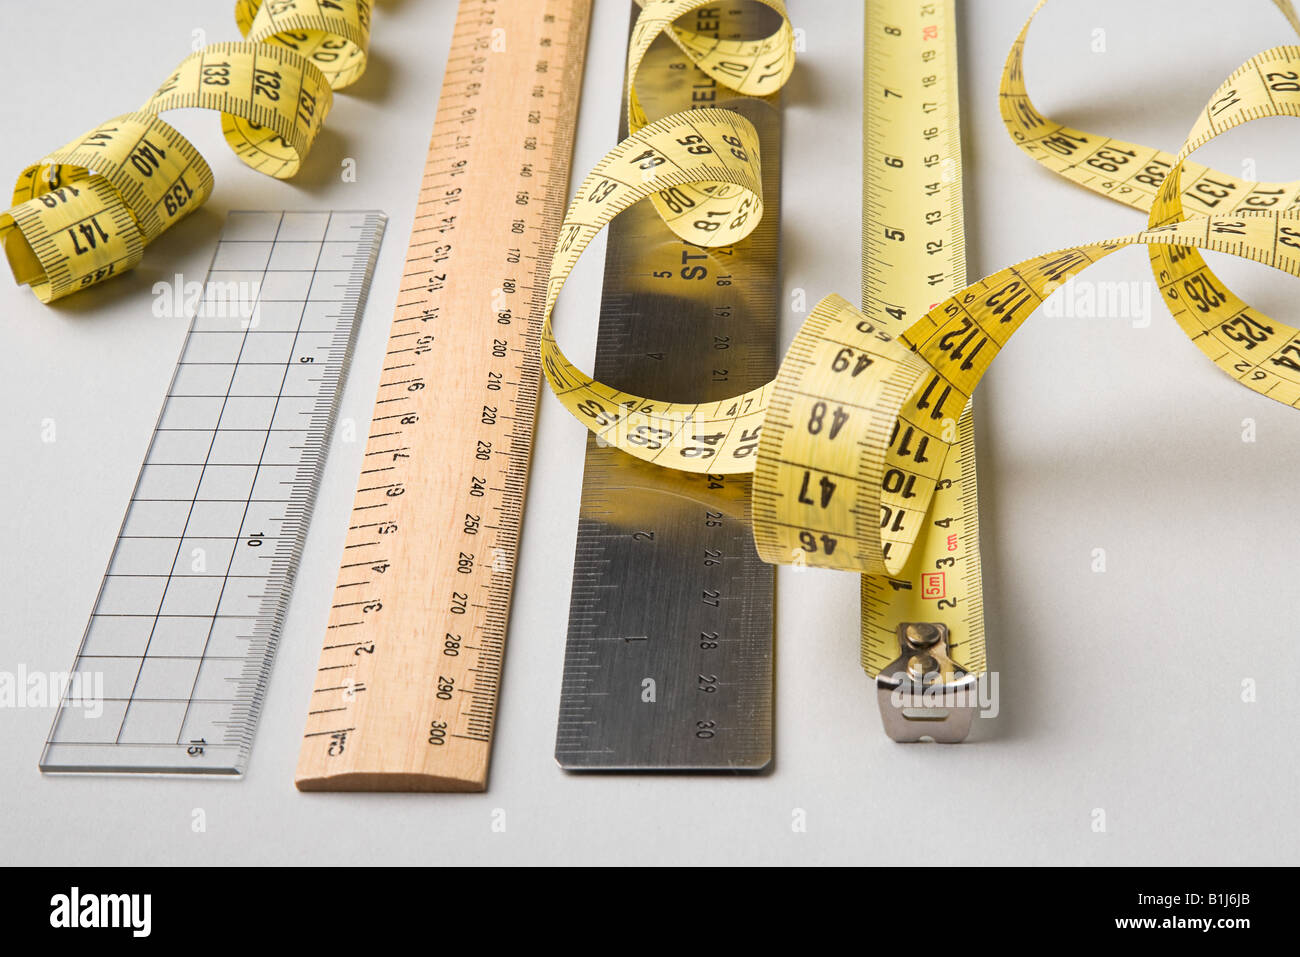 Rulers and tape measures - Stock Image